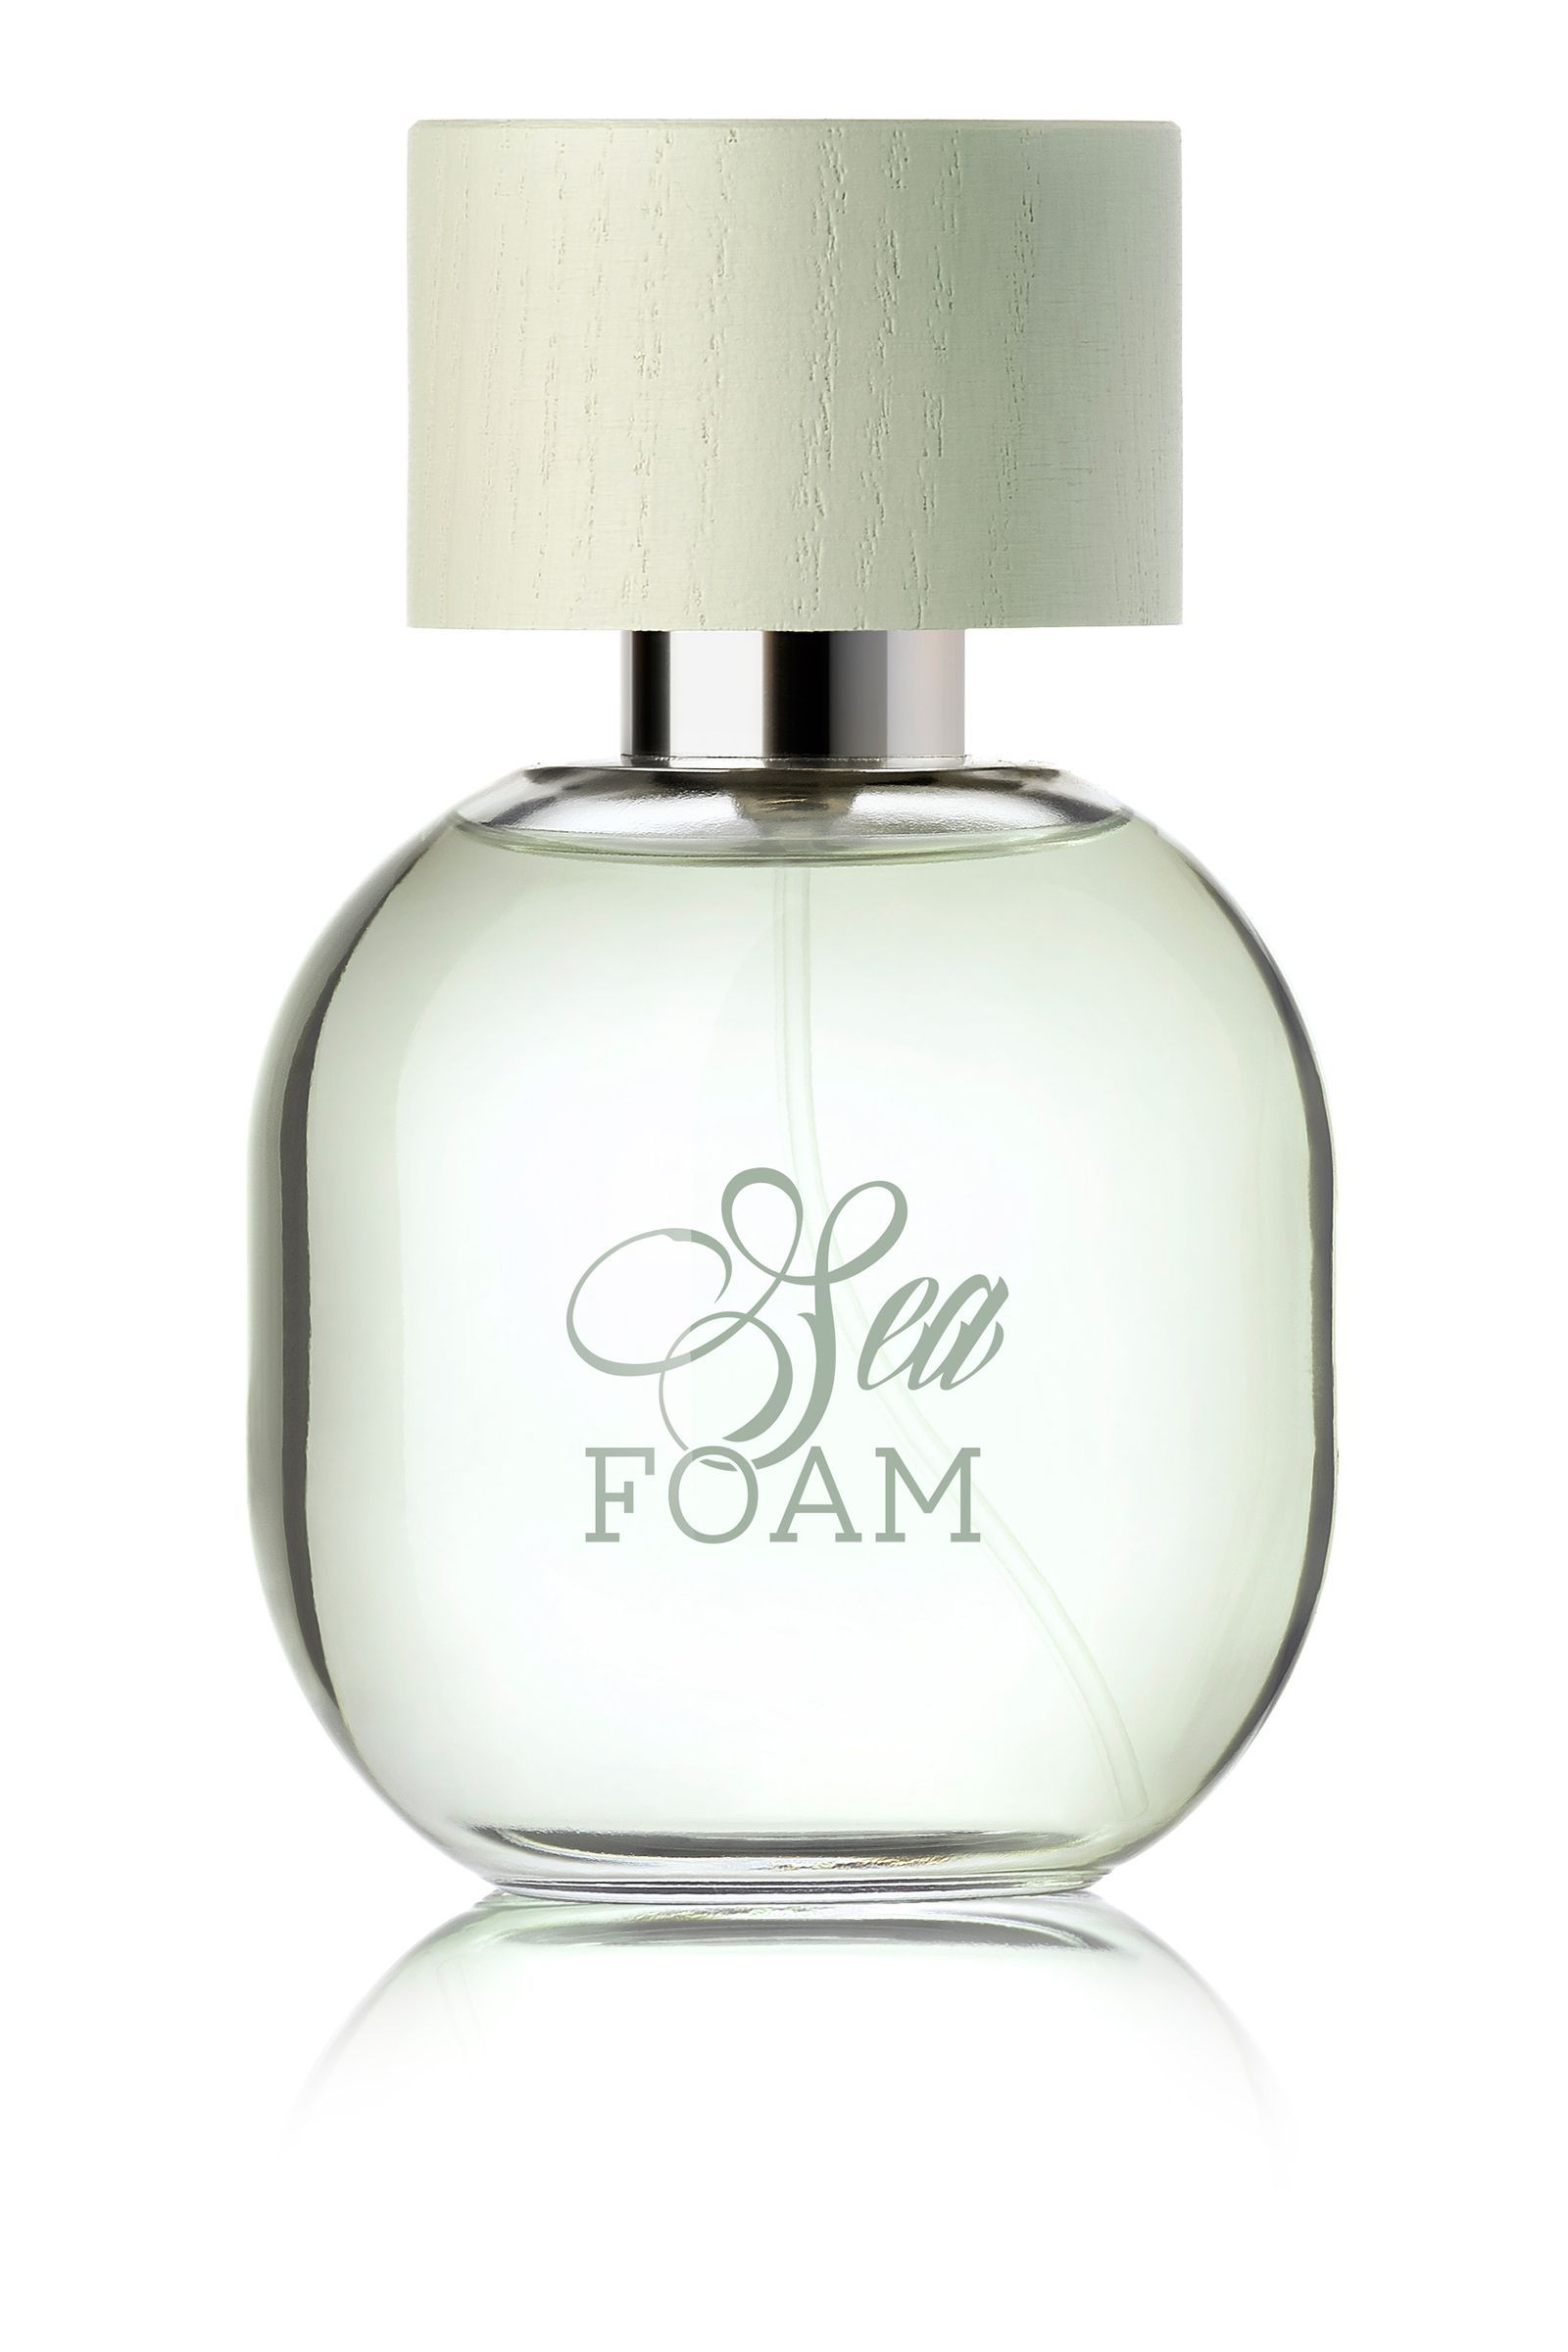 36 perfumes that are guaranteed to get